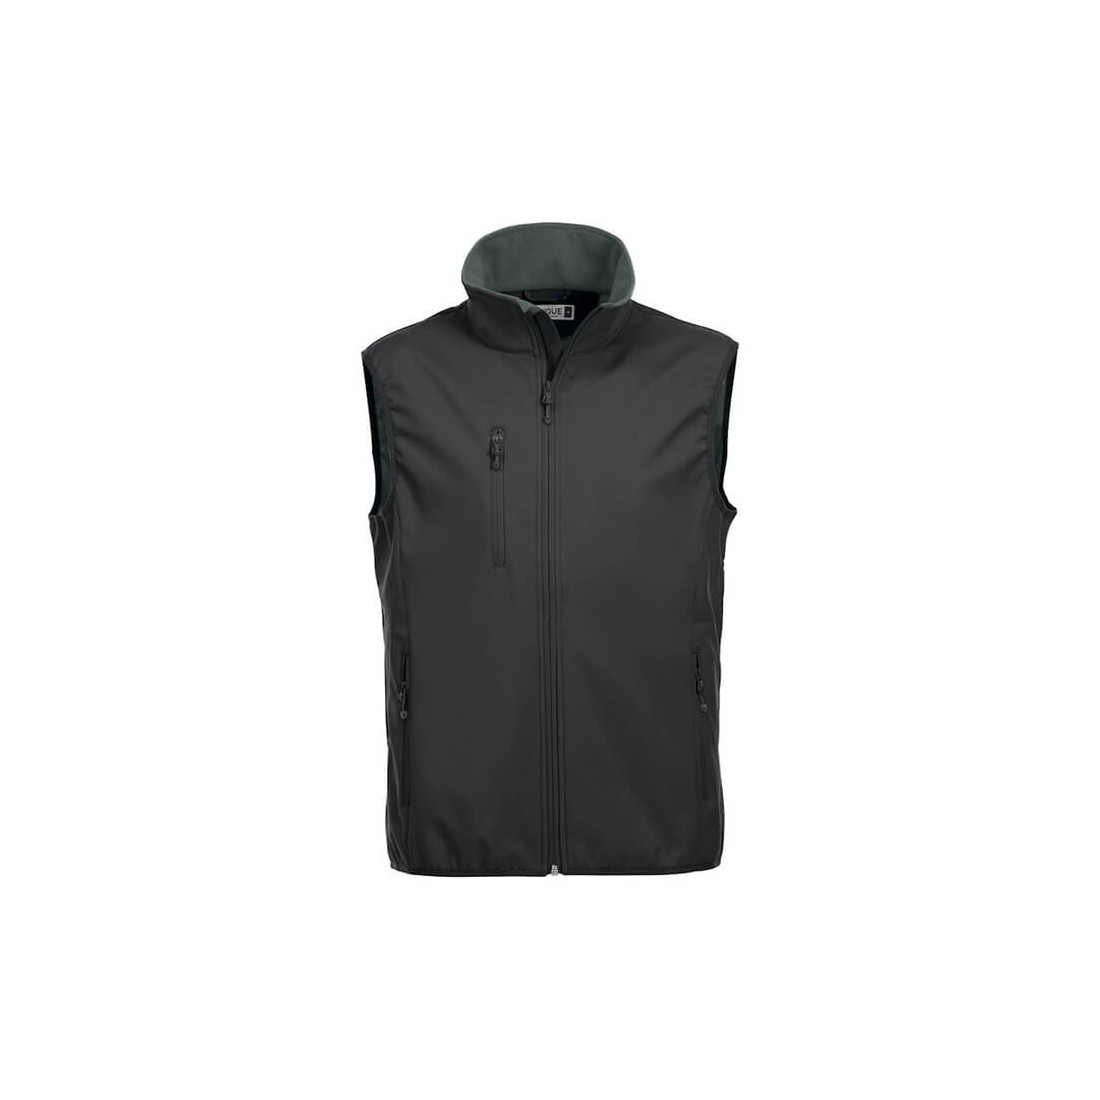 Chaleco laboral para hombre mod. Softshell